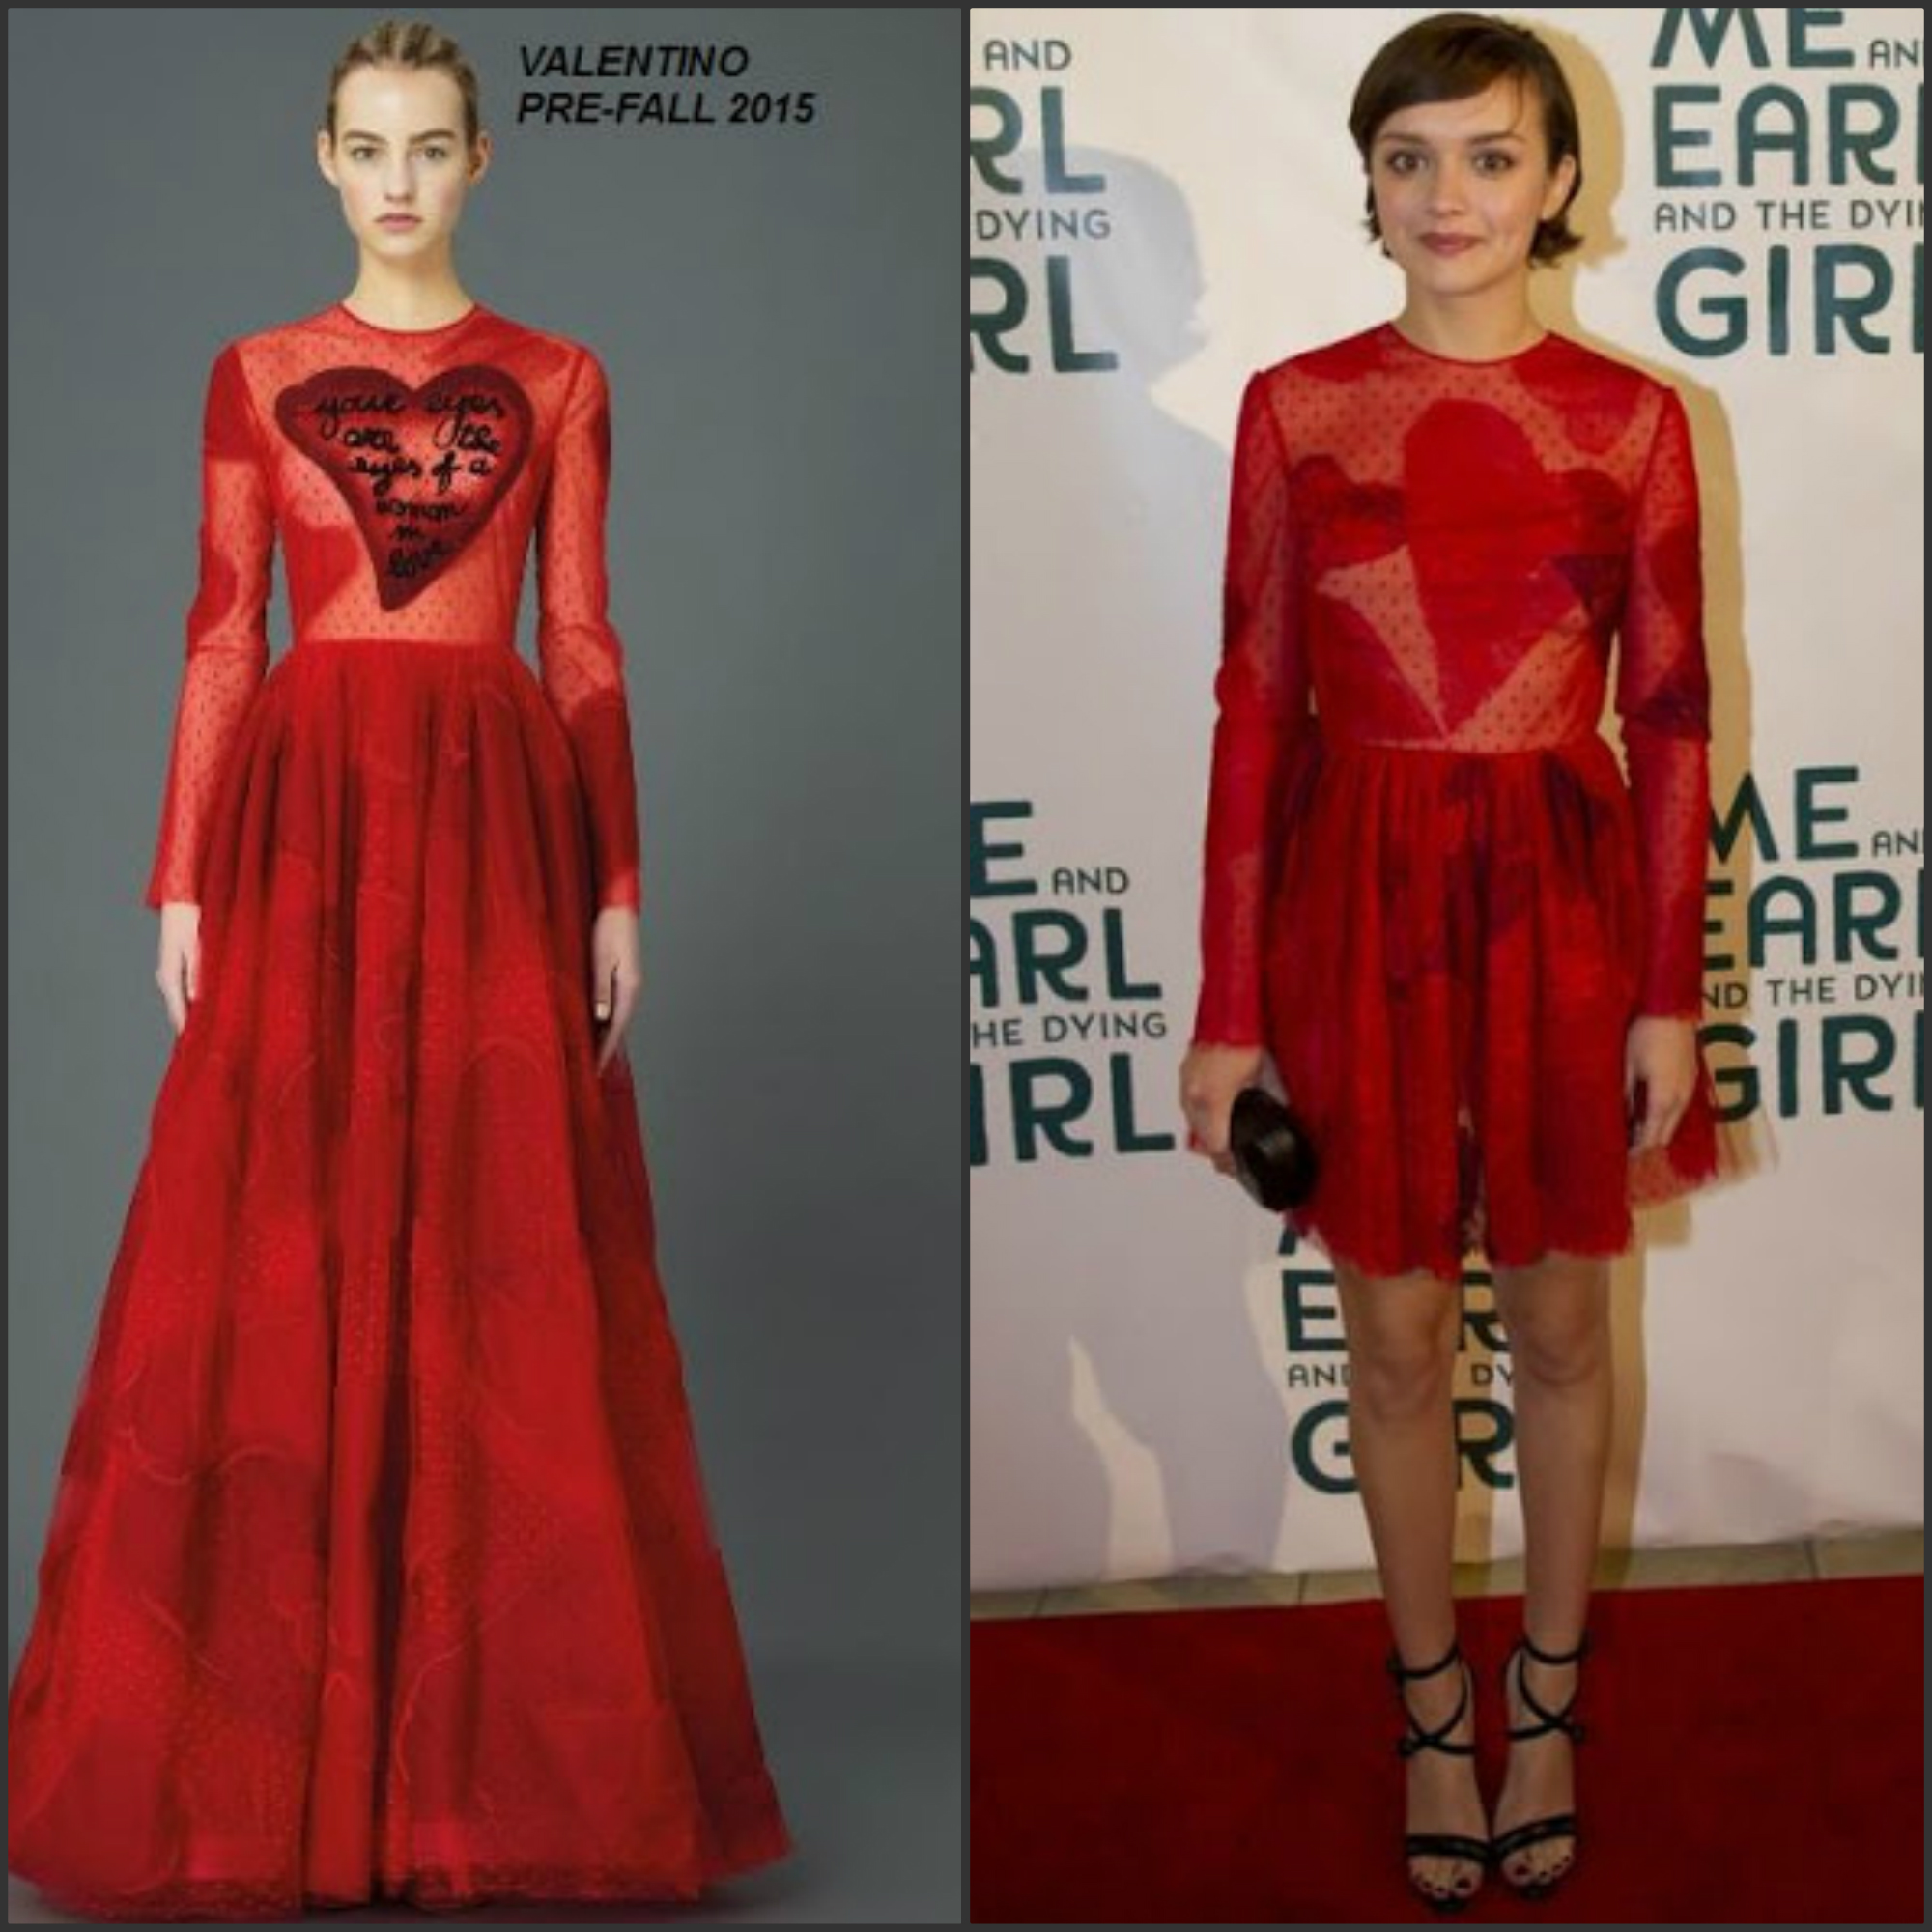 olivia-cooke-in-valentino-at-me-and-earl-and-the-dying-girl-premiere-in-pittsburgh